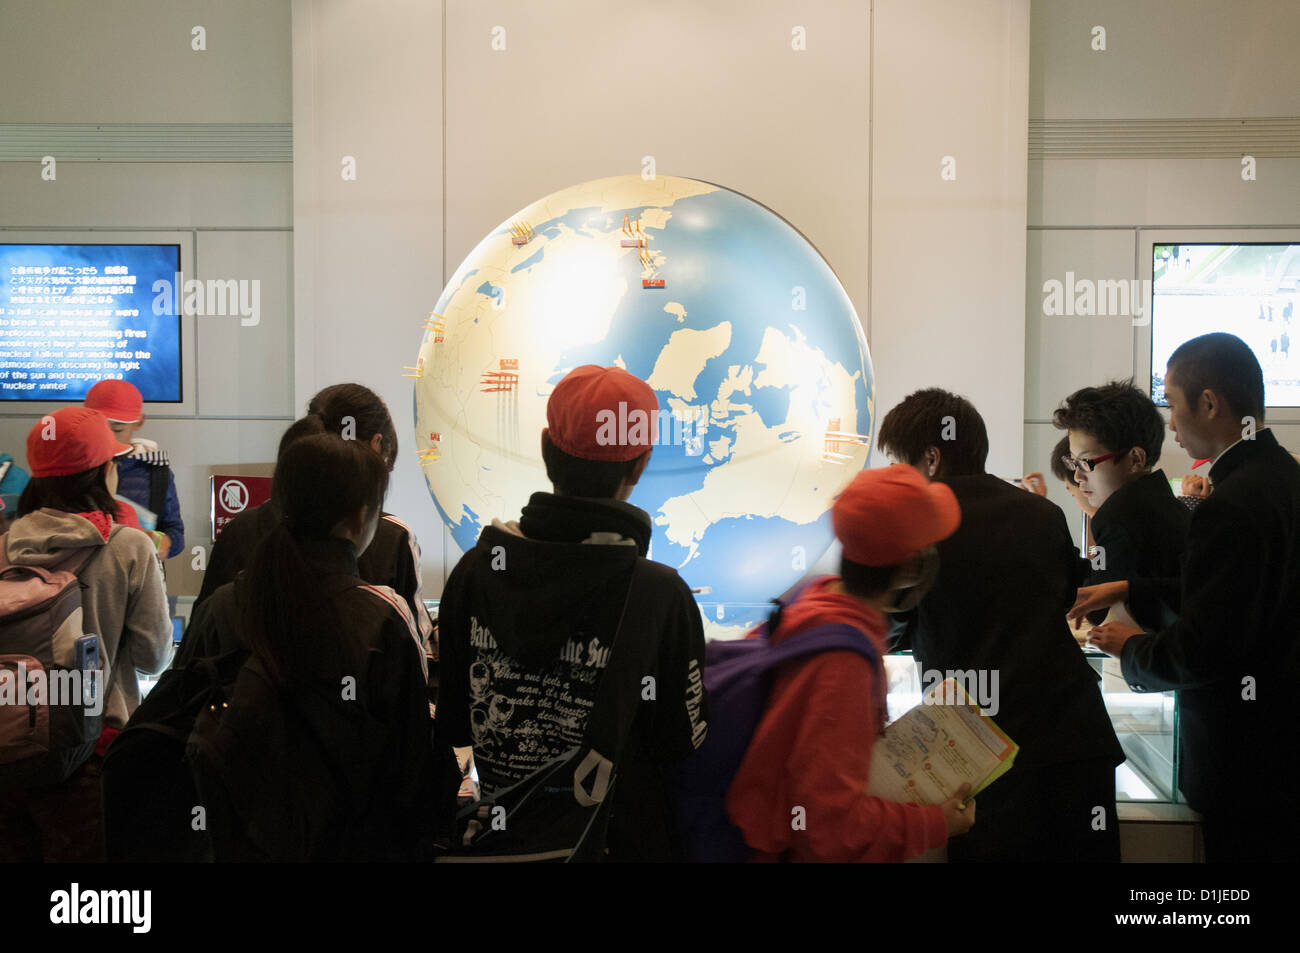 Japanese schoolchildren gather around a display in the Peace Memorial Museum at Hiroshima - Stock Image